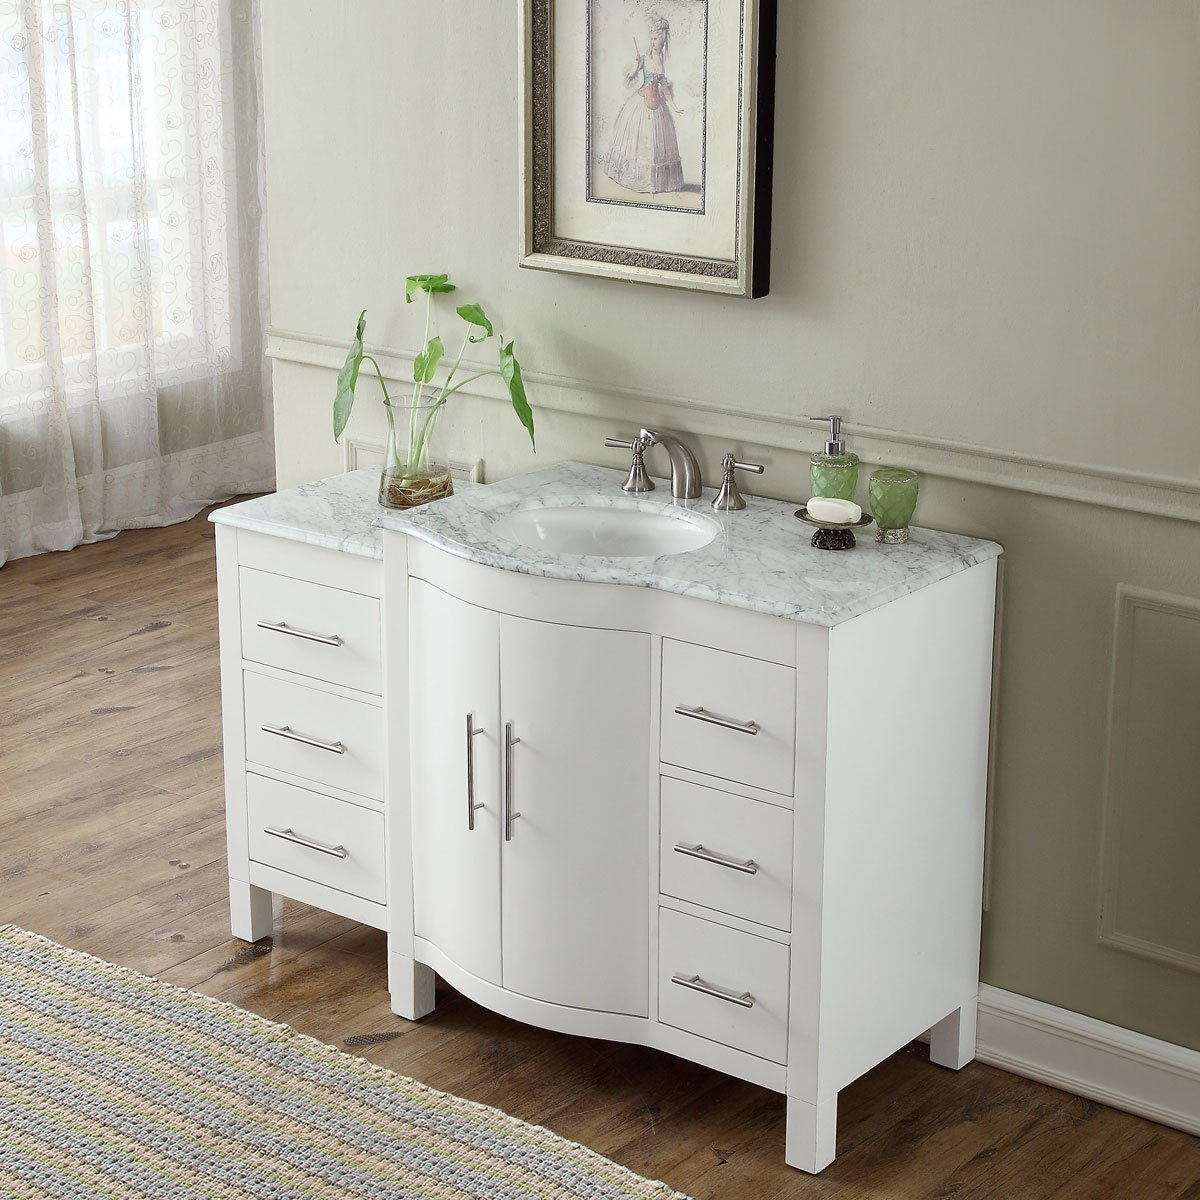 54 Inch Single Sink Contemporary Bathroom Vanity Cabinet White Finish Carrara White Marble